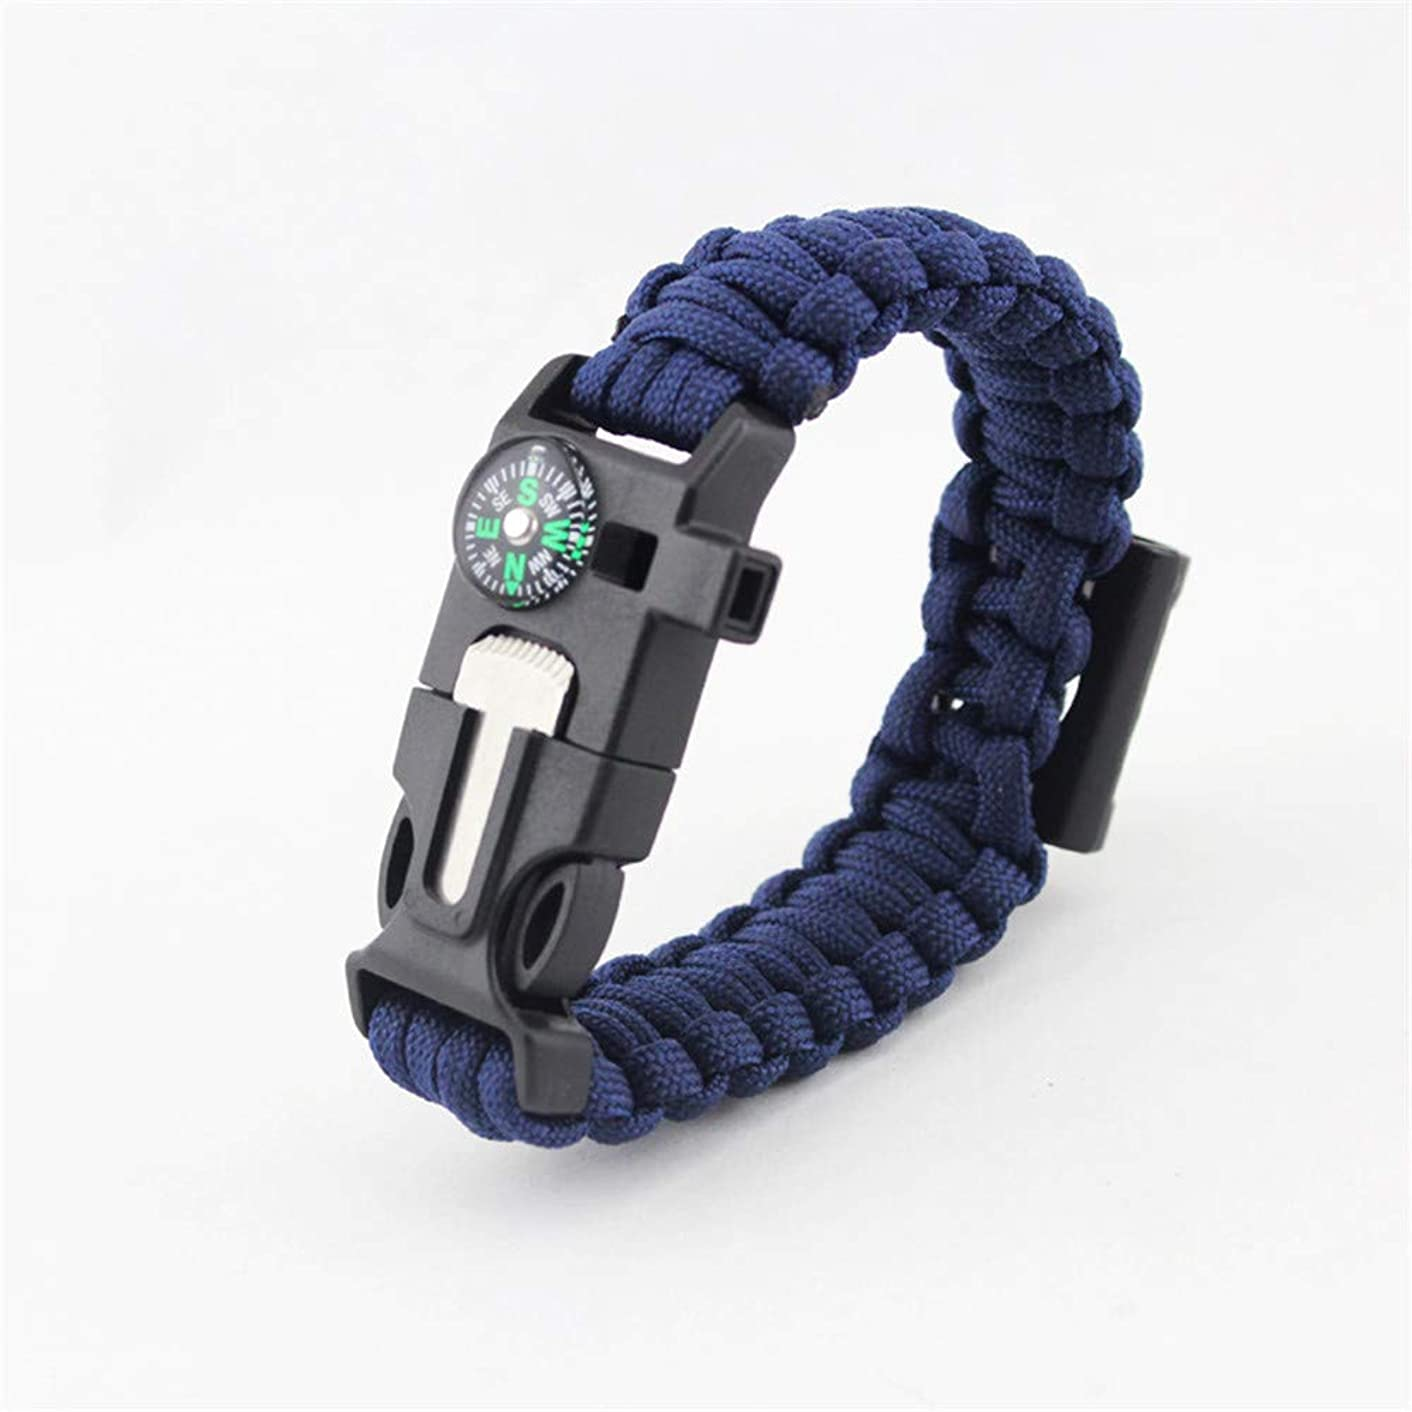 Multifunctional Outdoor Emergency Gear, Woven Nylon Rope Paracord Bracelet with Compass, Flint Fire Starter, Scraper, Whistle, Camping Hiking Adventure Survival Kit